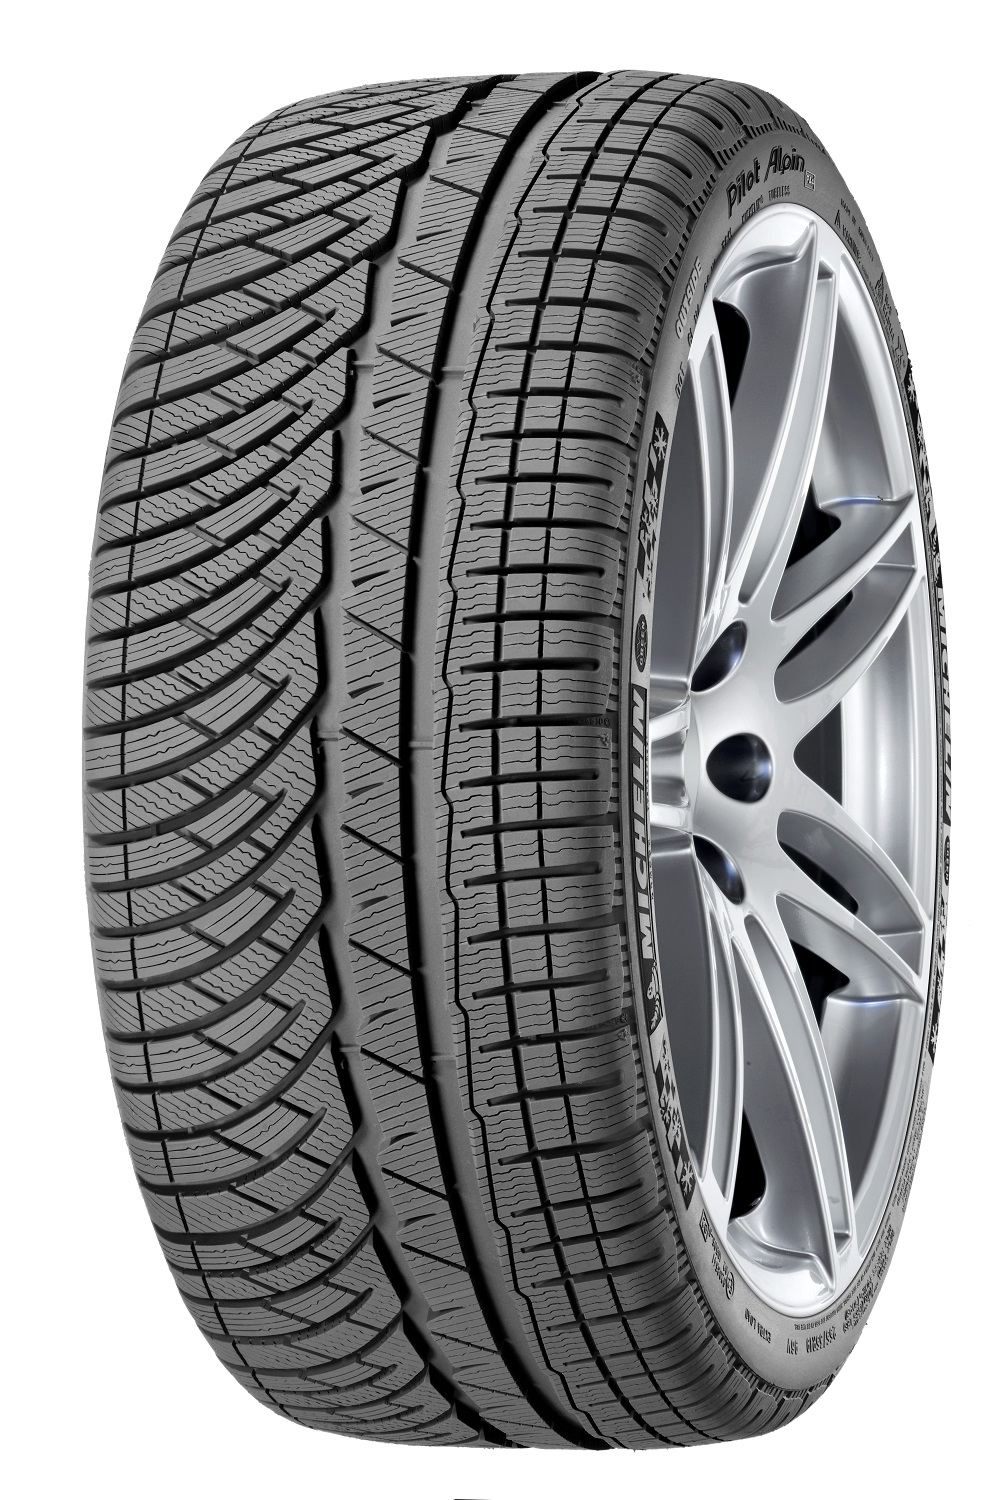 Anvelopa Iarna Michelin PIL.ALPIN PA4 255/40R18 99V